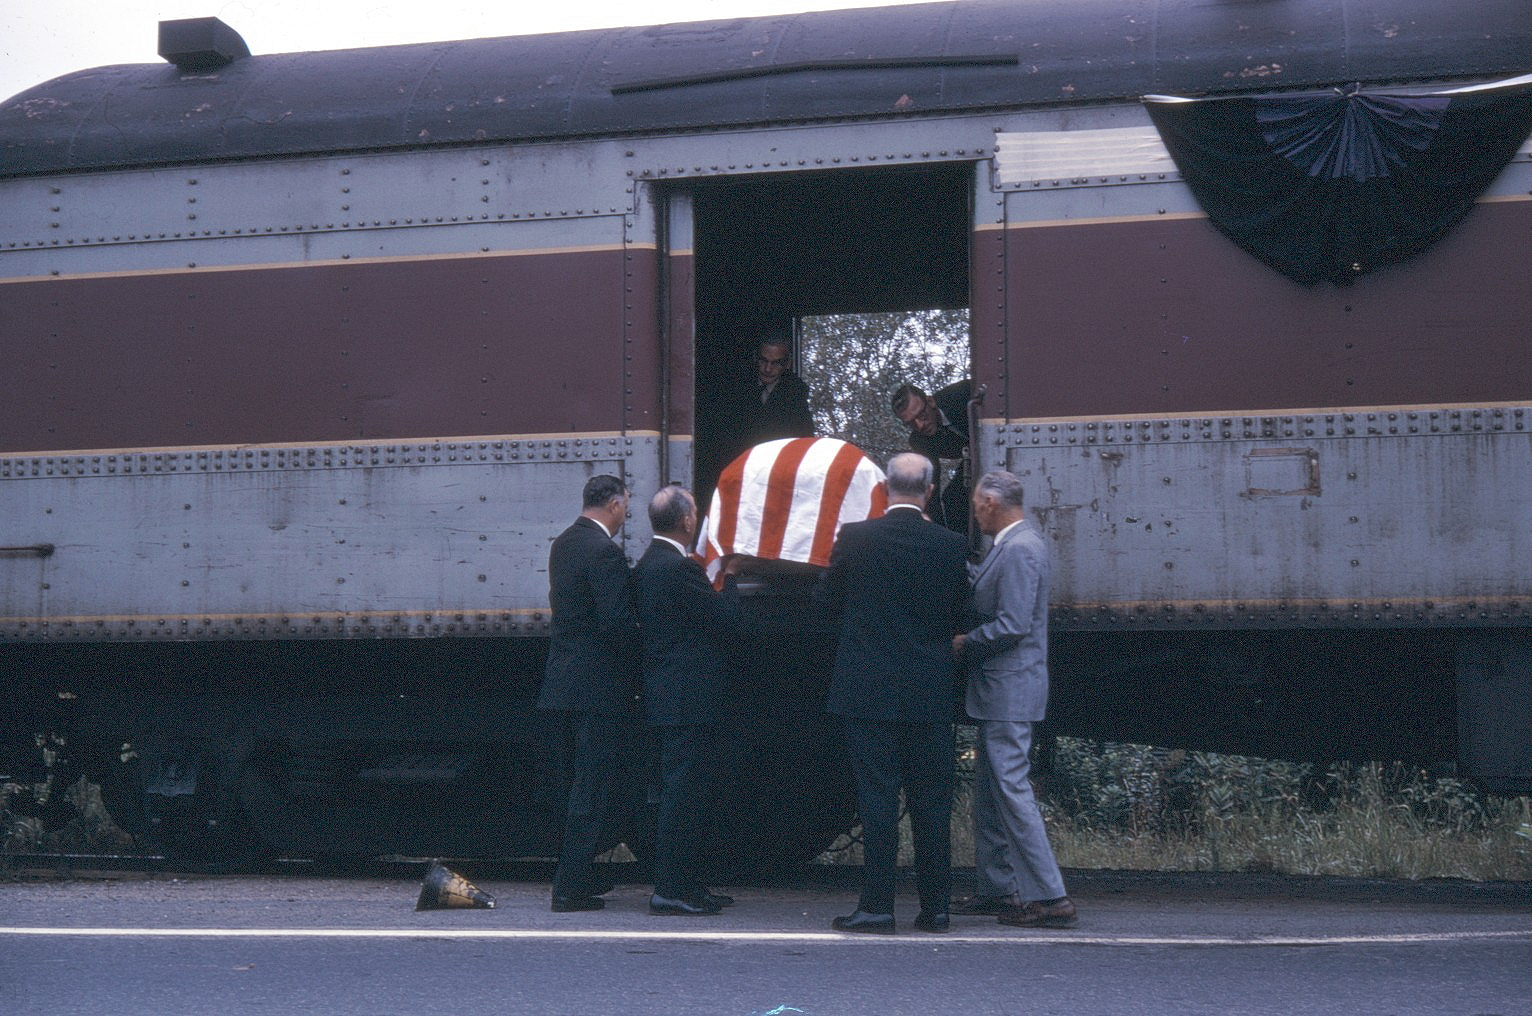 MCC Carlos H Gil funeral train 1 unloading casket Ridgedale Ave. E.Hanover July 1968 SPH Coll